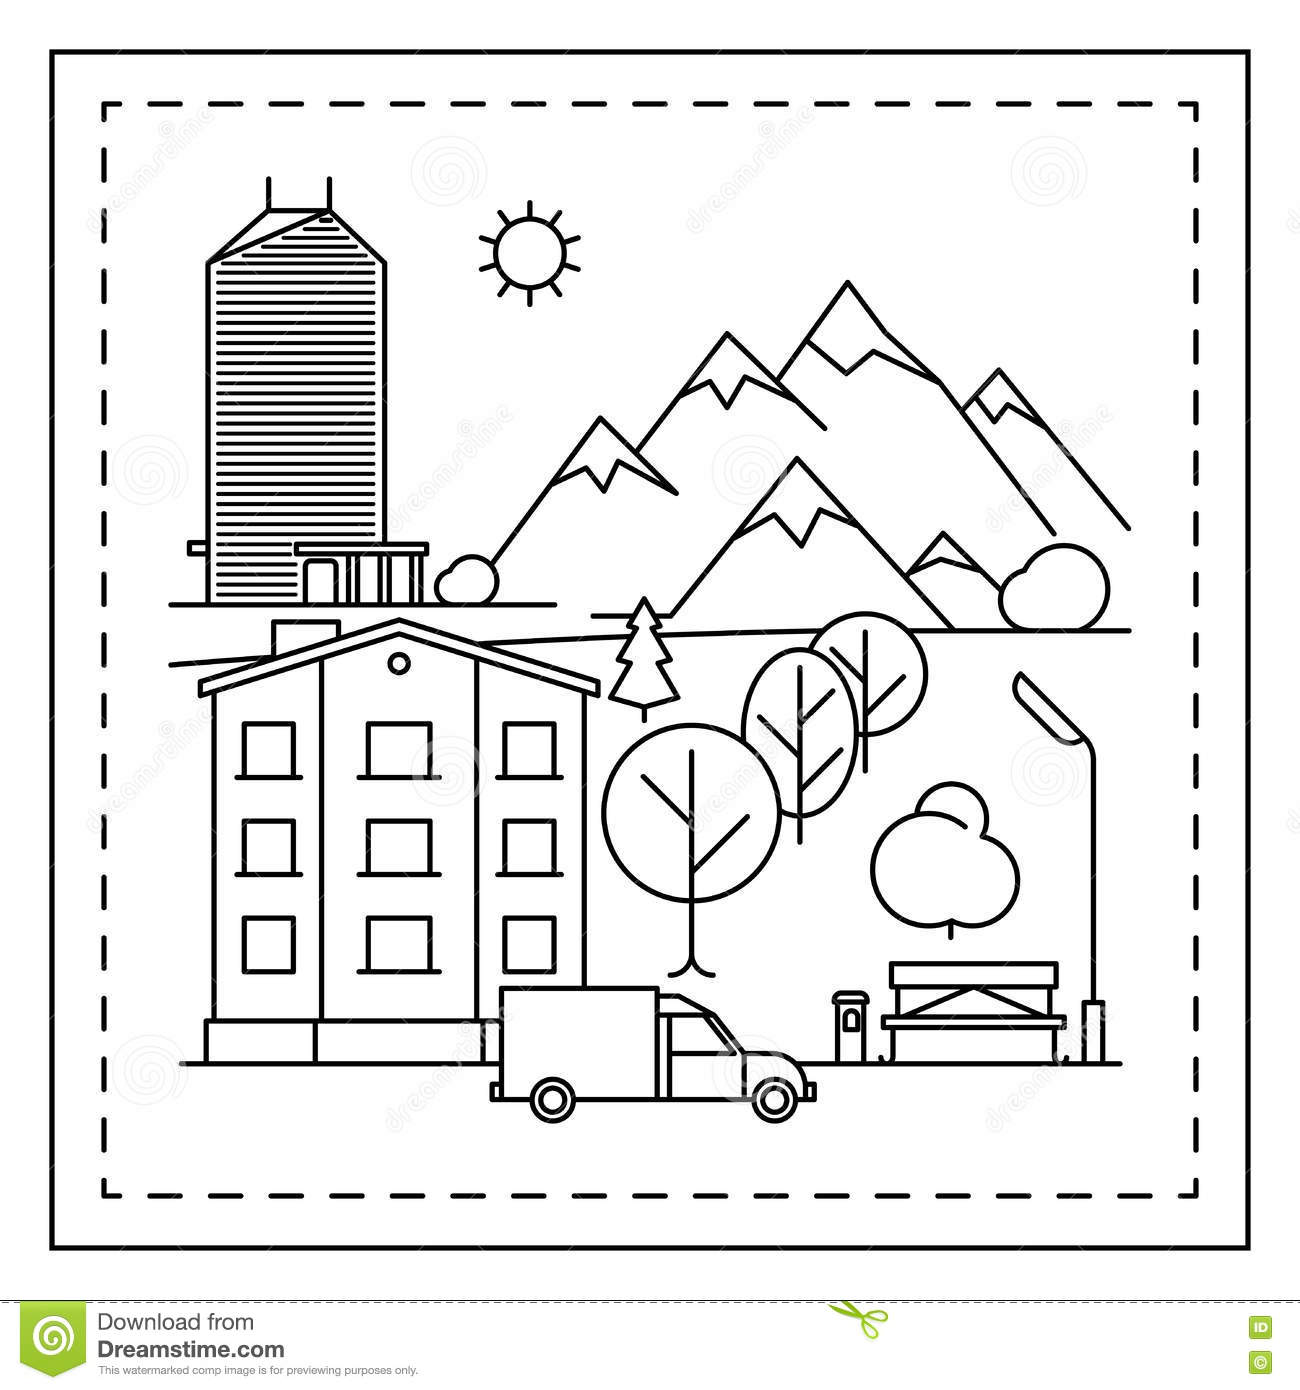 city landscape coloring page for kids stock vector image 79785856